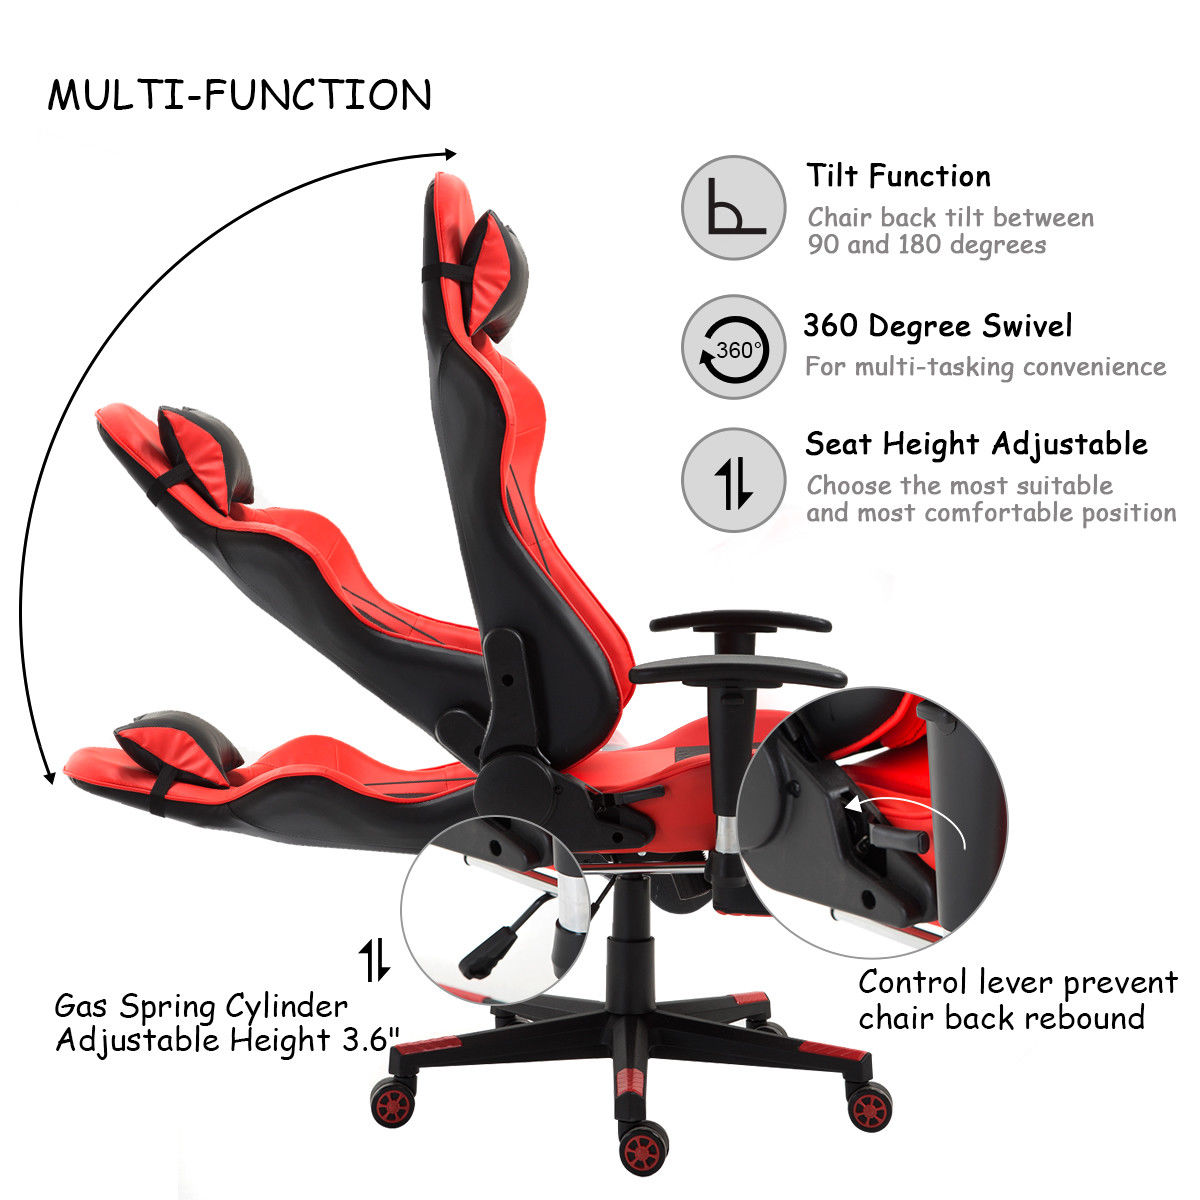 office chairs with back support chair covers kijiji calgary giantex ergonomic gaming high racing lumbar footrest modern reclining furniture hw56576re in from